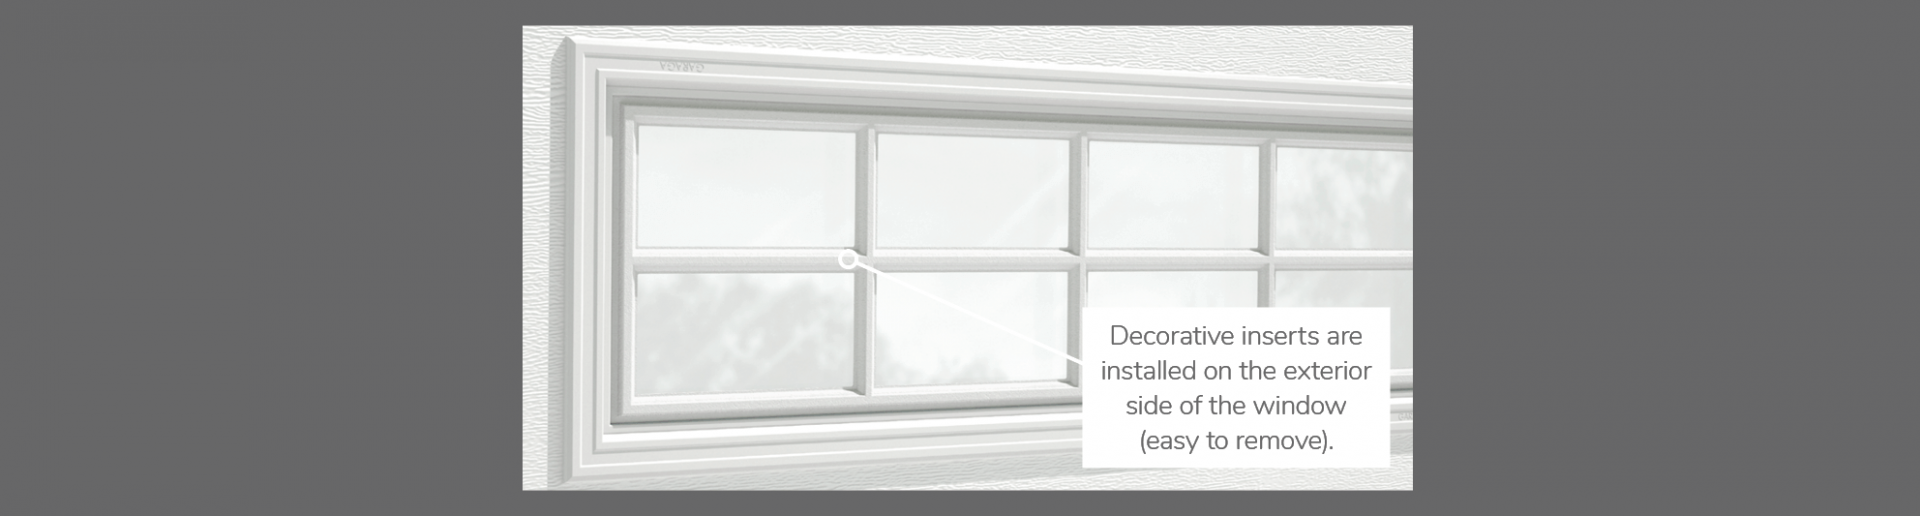 "Stockton Decorative Insert, 40"" x 13"" or 21"" x 13"", available for door R-16 and R-12"